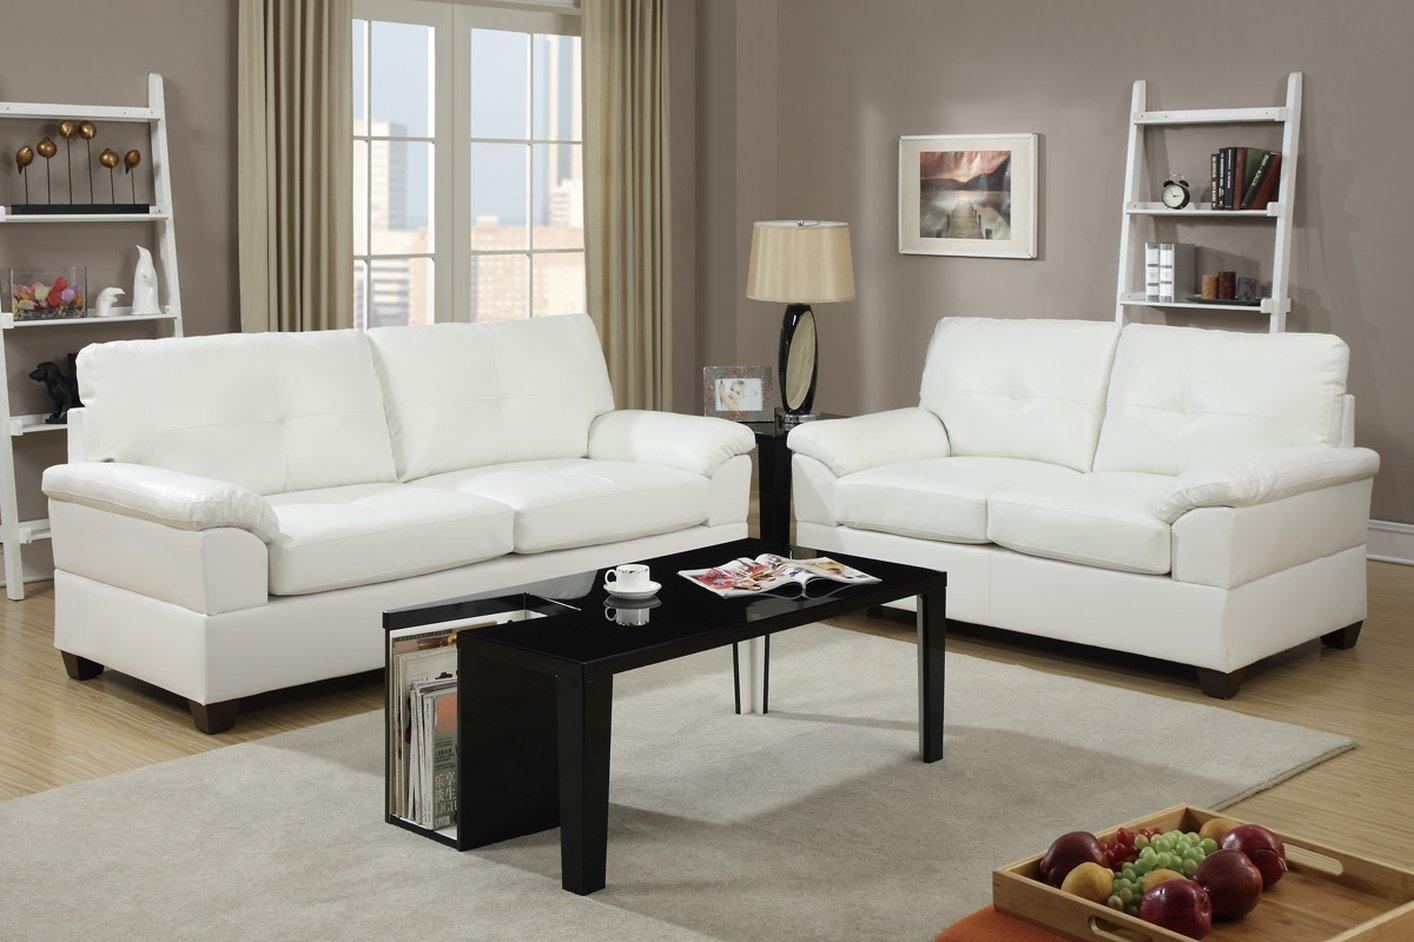 Sofa: Astounding White Leather Loveseat 2017 Ideas White Sofa Set With Regard To Off White Leather Sofa And Loveseat (Image 16 of 20)